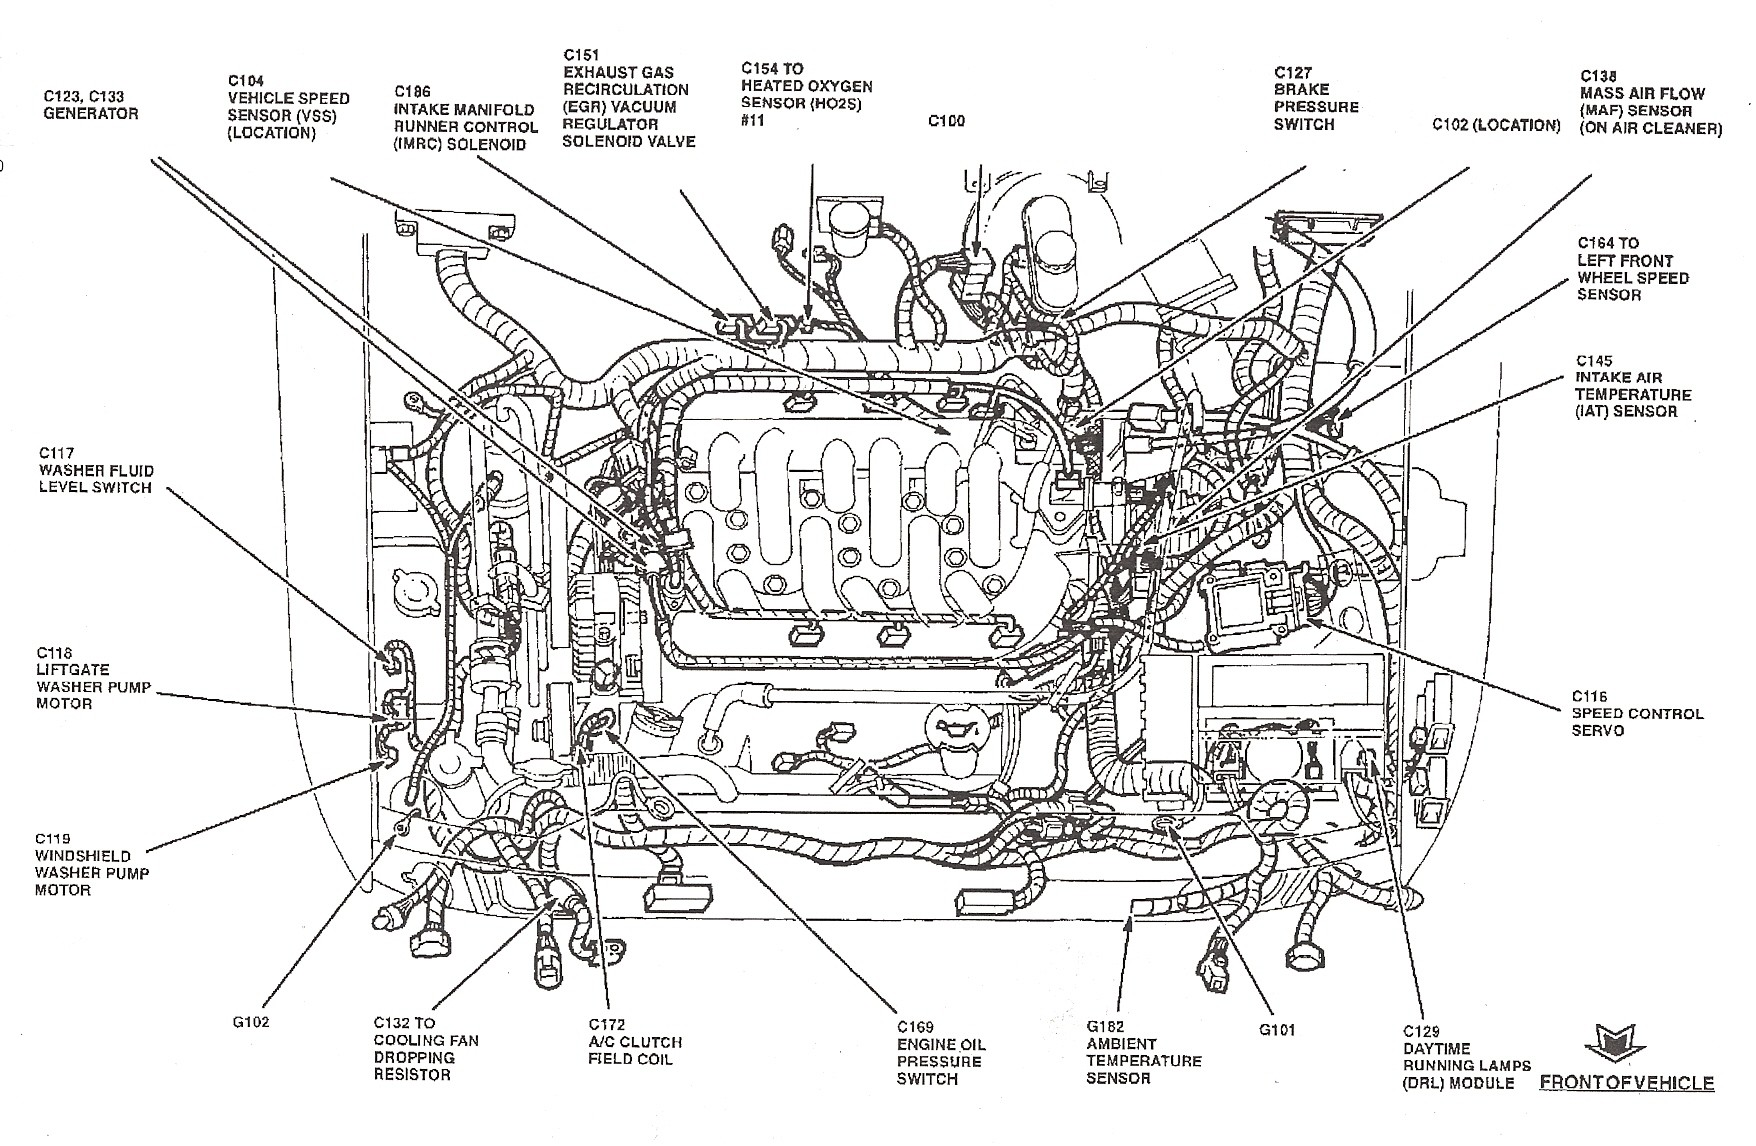 2007 Ford Focus Fuel System Diagram  2005 Ford Focus Hard